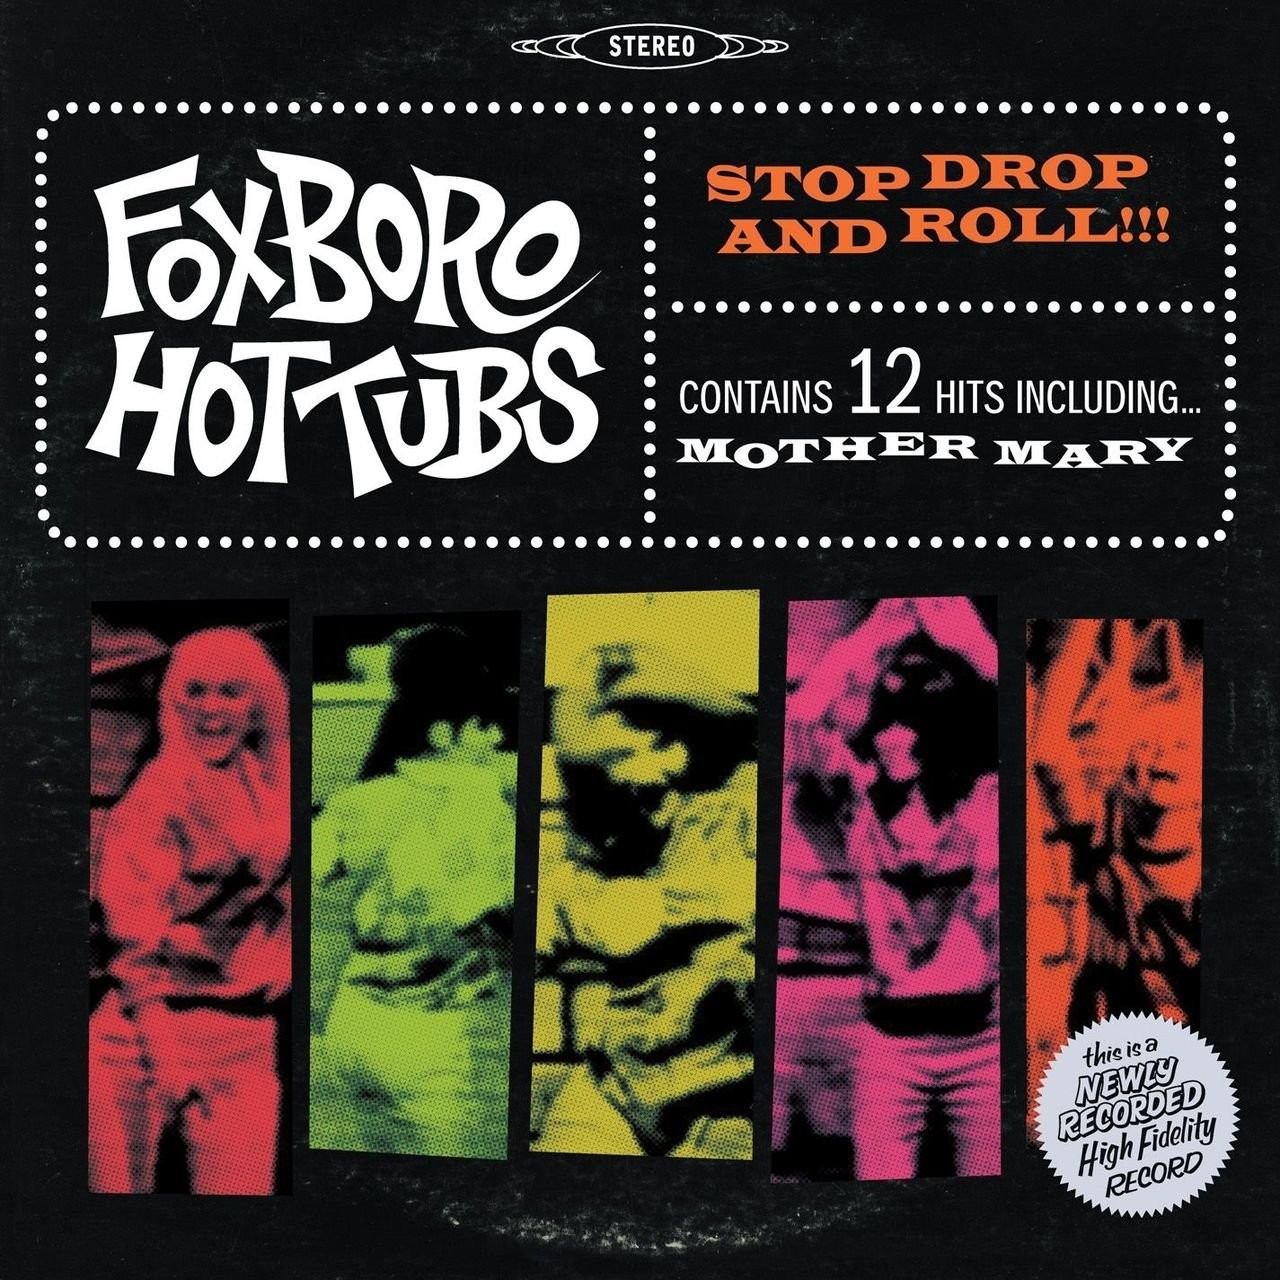 Foxboro Hottubs - Stop, Drop And Roll!!!